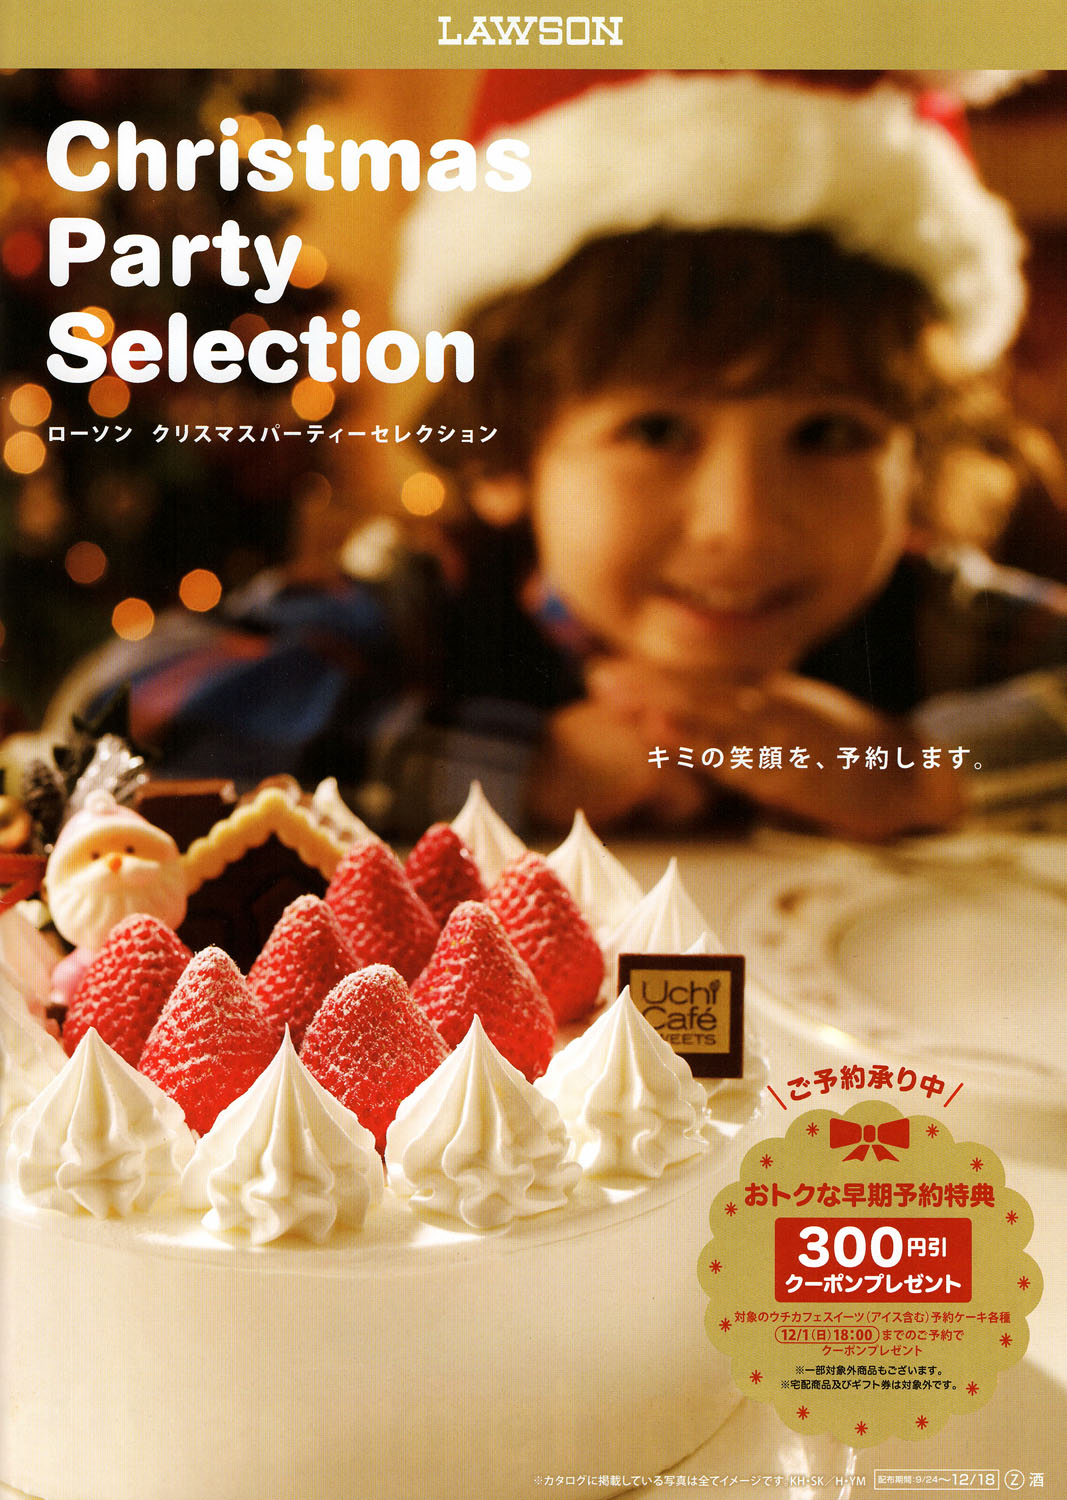 lawson christmas catalog cover - Christmas Food Catalogs